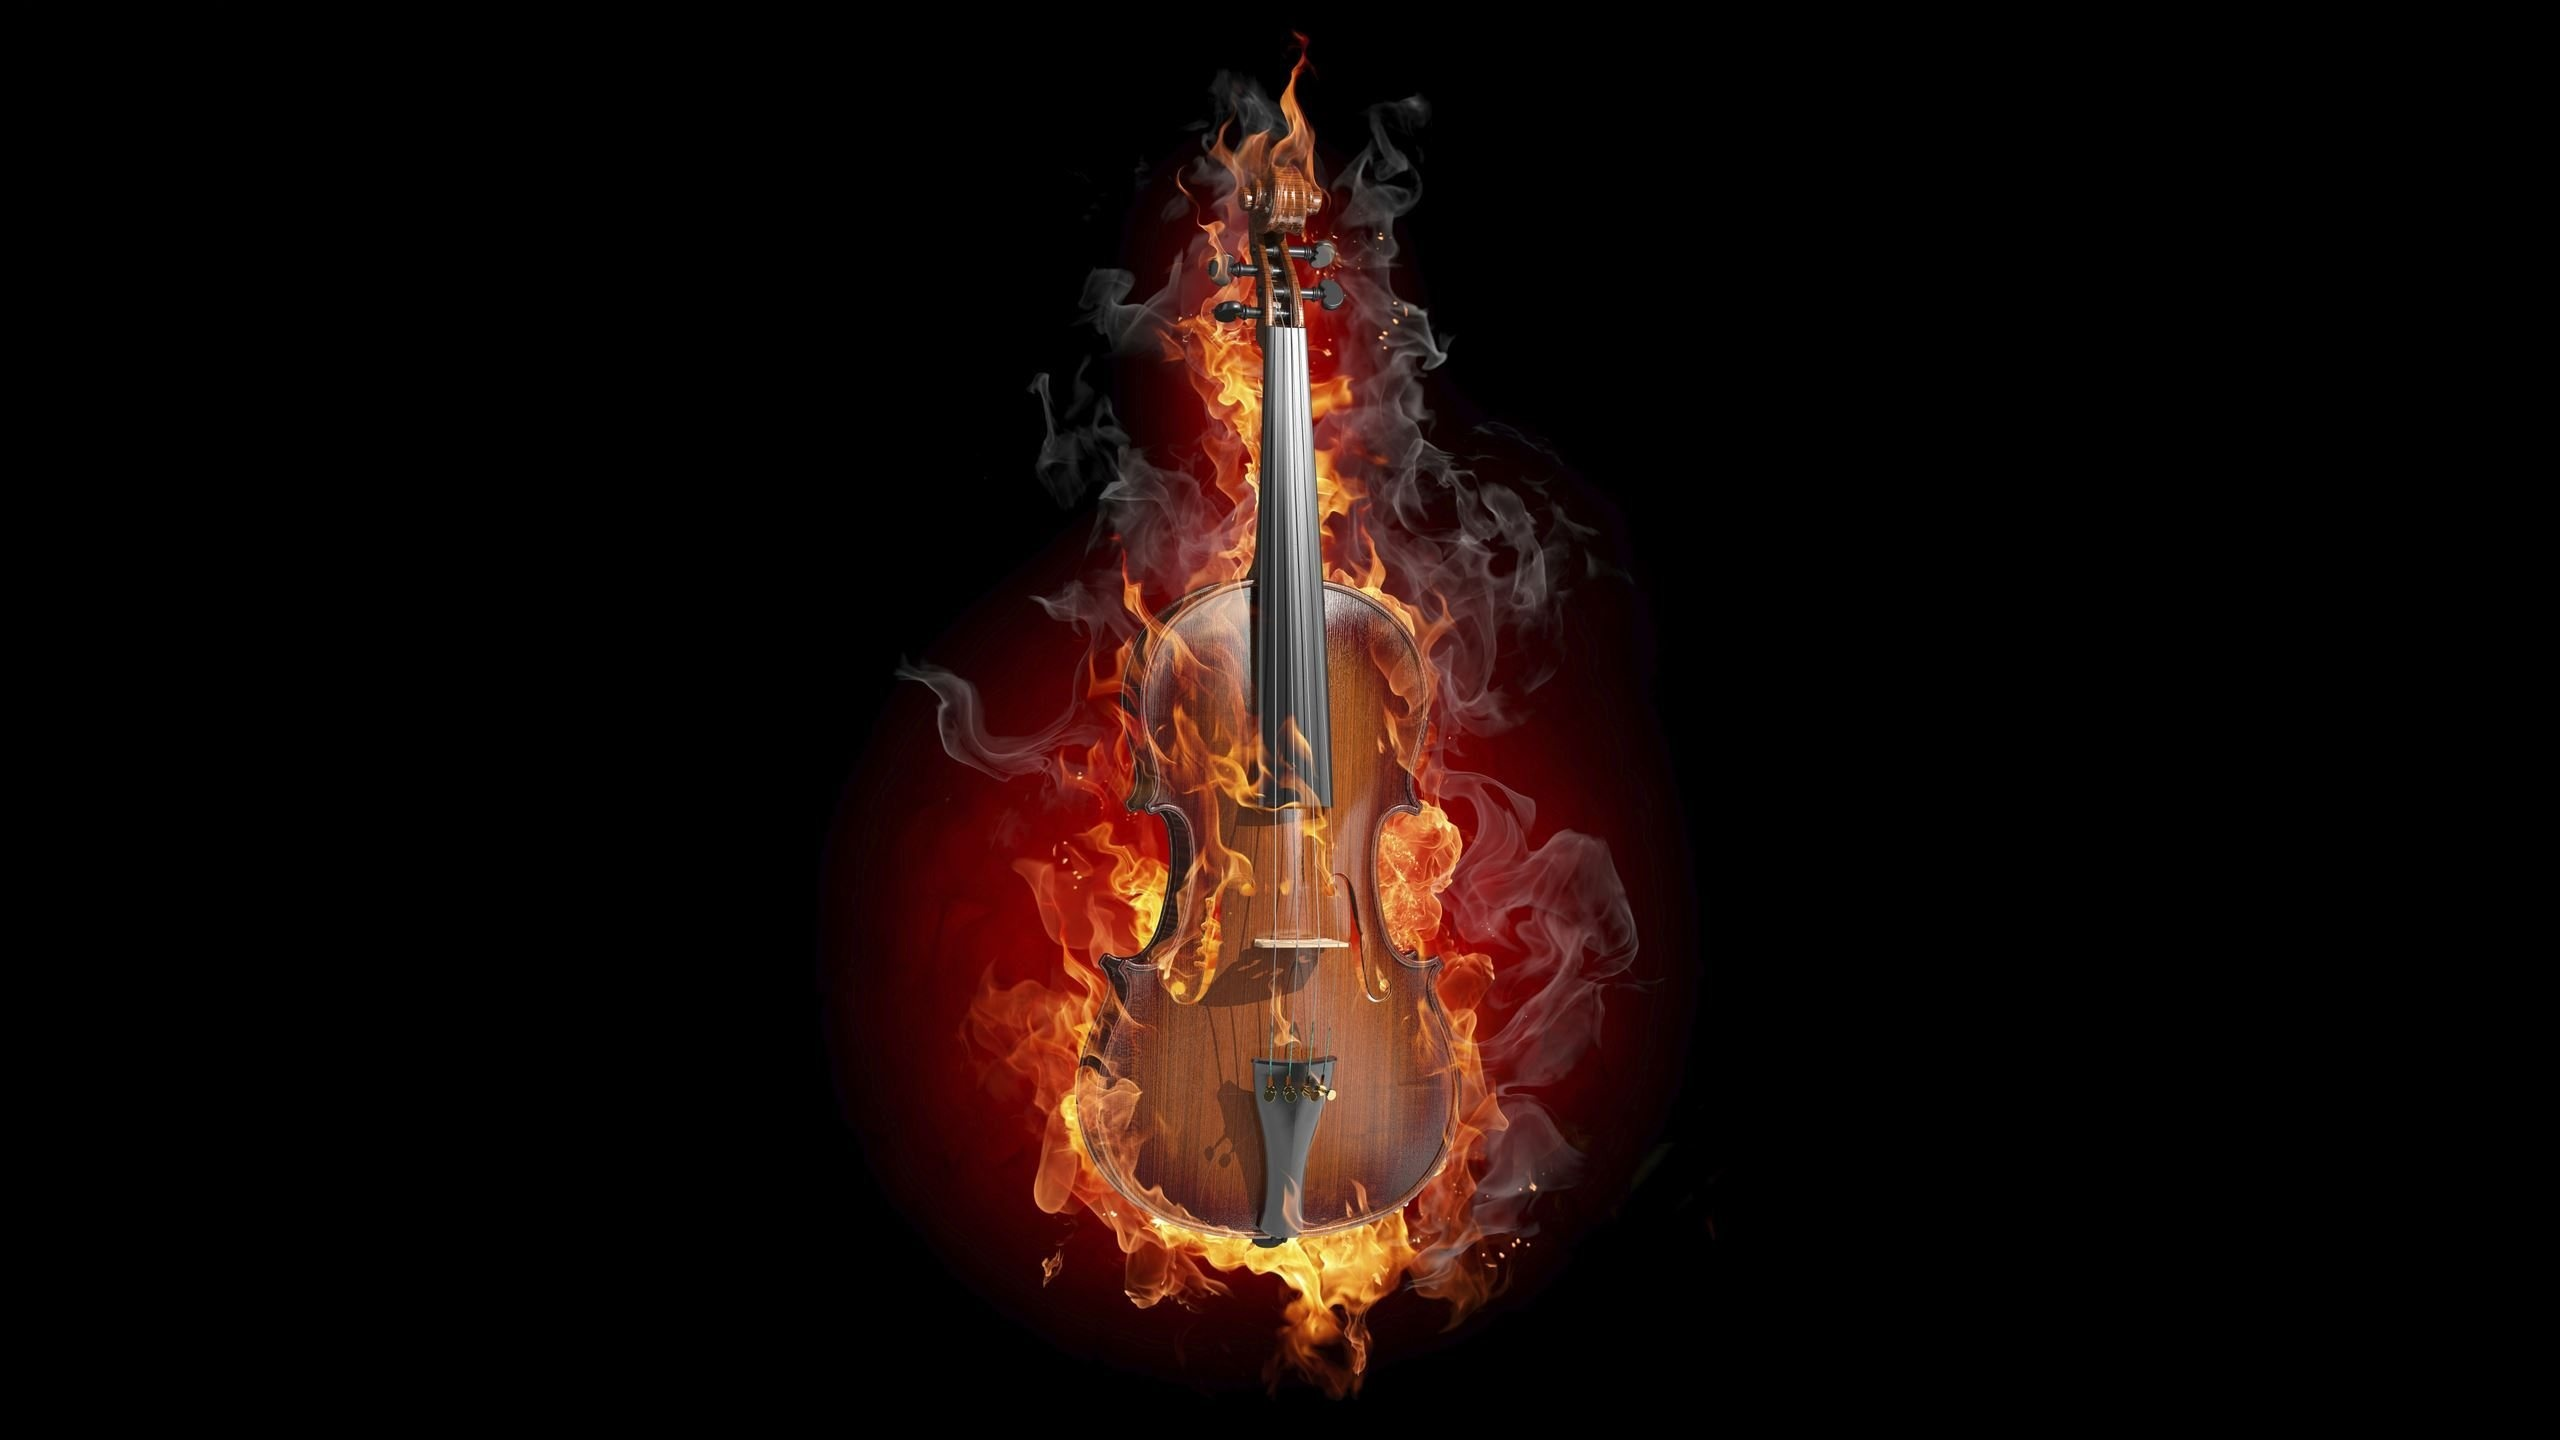 fire violin wallpapers 2560x1440 253438